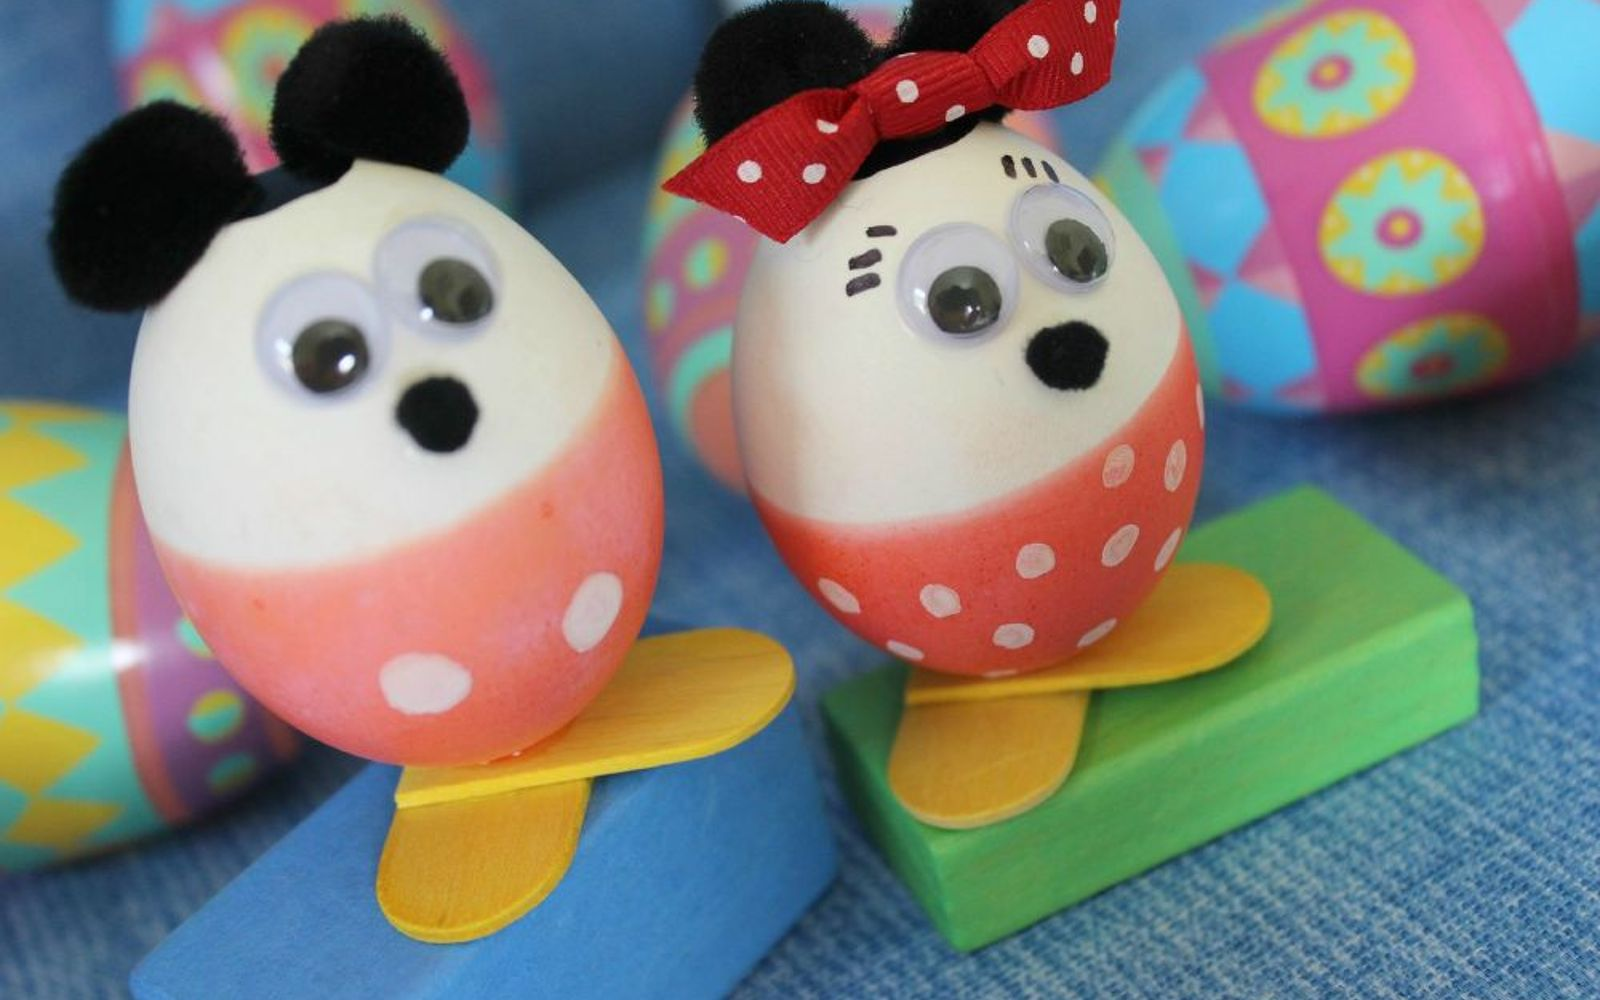 s 25 quick easter egg ideas that are just too stinkin cute, crafts, easter decorations, Make Mickey Minnie Mouse for kids